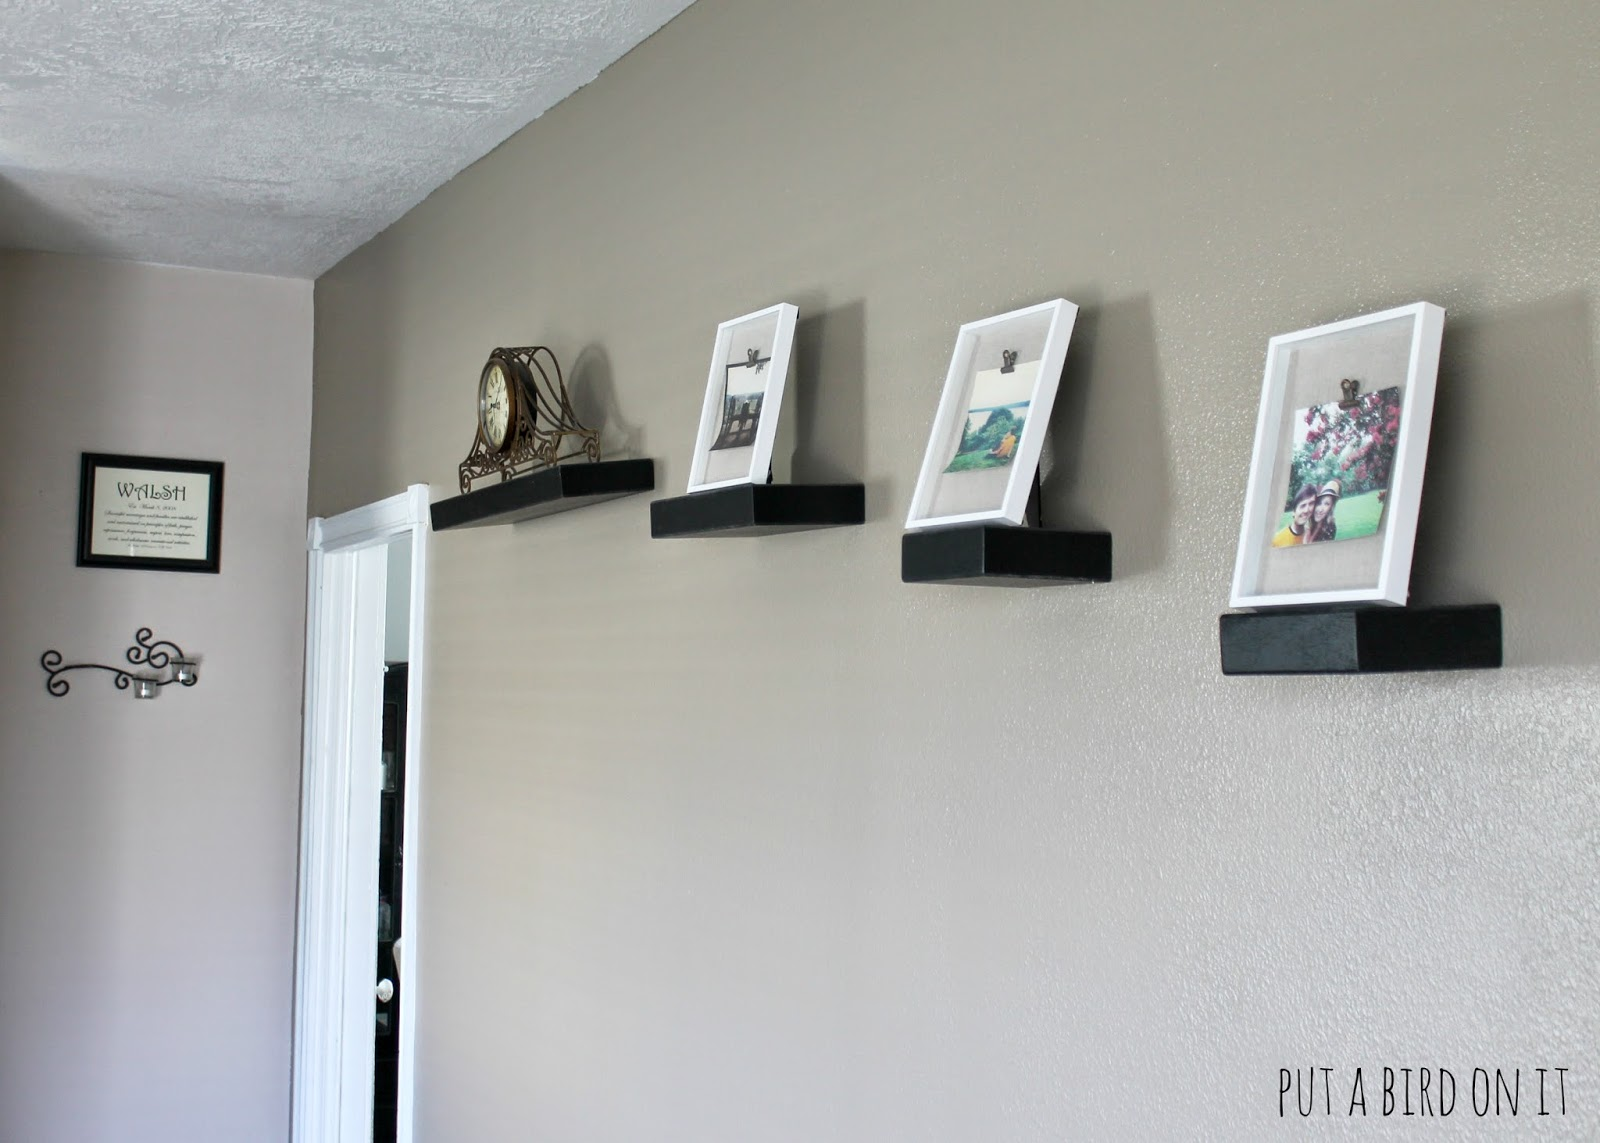 Diy shadow box frame makeover guest post from daniela put a frames since it was that easy they all have a different photo from a recent family vacation i love them in my living room on our floating shelves jeuxipadfo Gallery